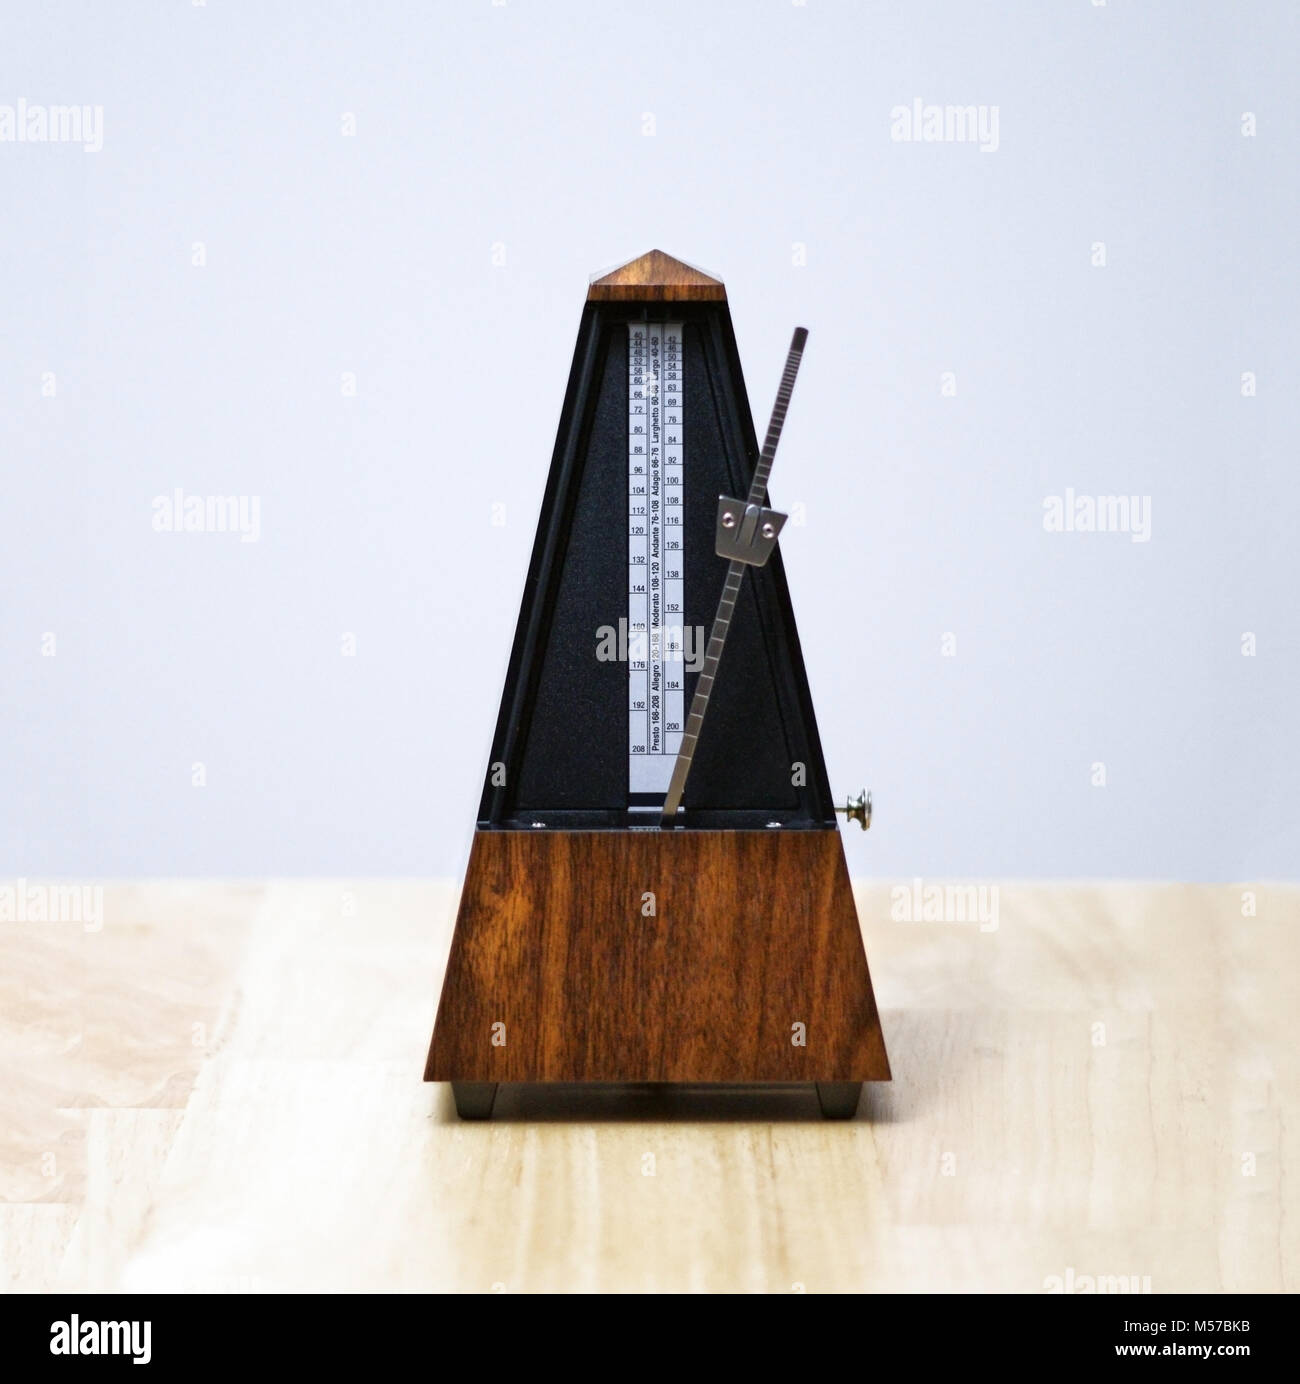 Metronome in action, closeup, isolated and on a plain background. Calgary, Alberta, Canada. - Stock Image